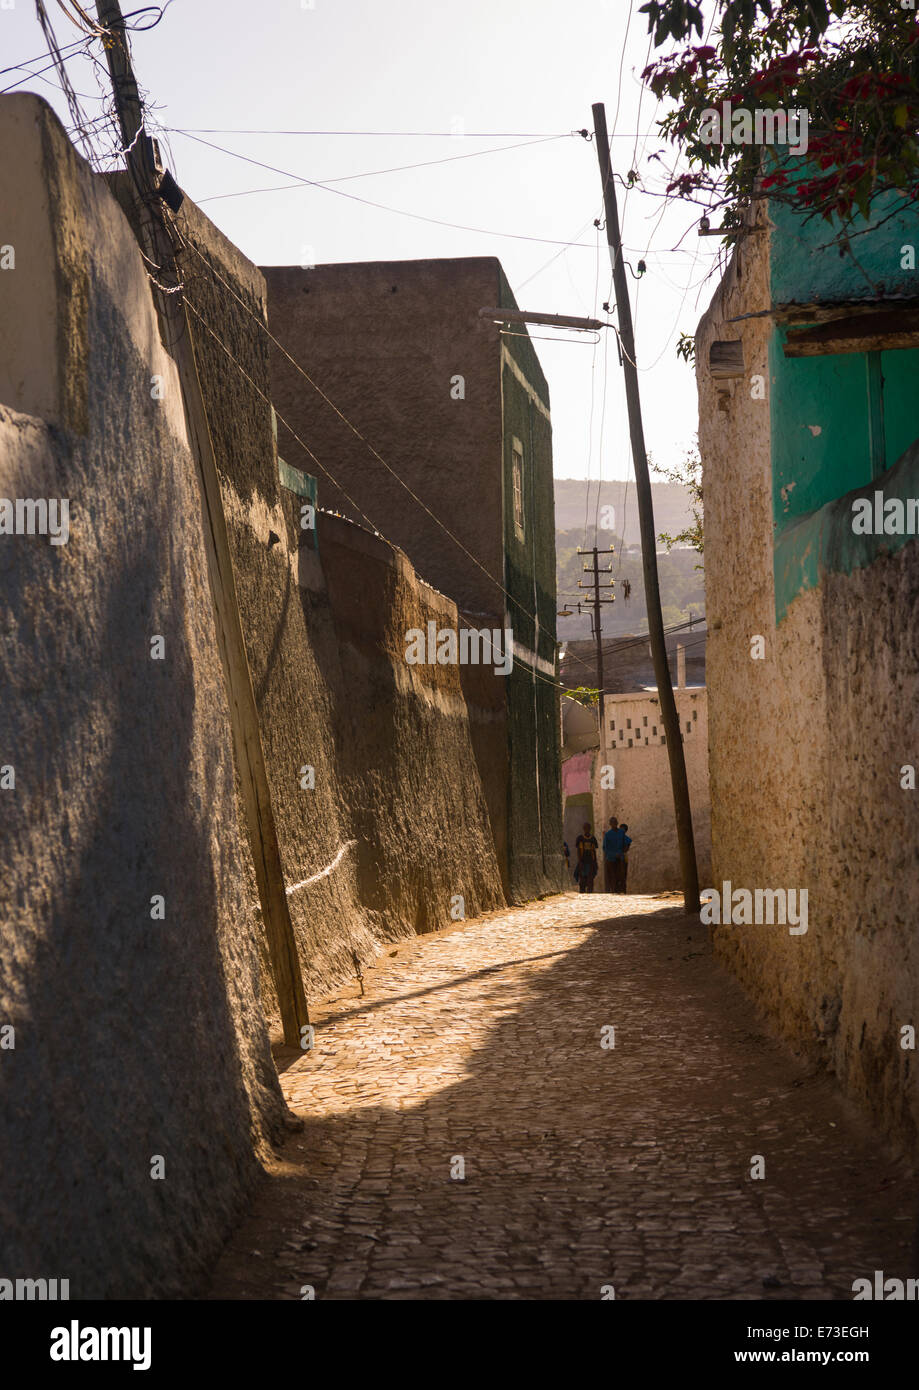 People Walking In The Narrow Streets Of The Old Town, Harar, Ethiopia - Stock Image